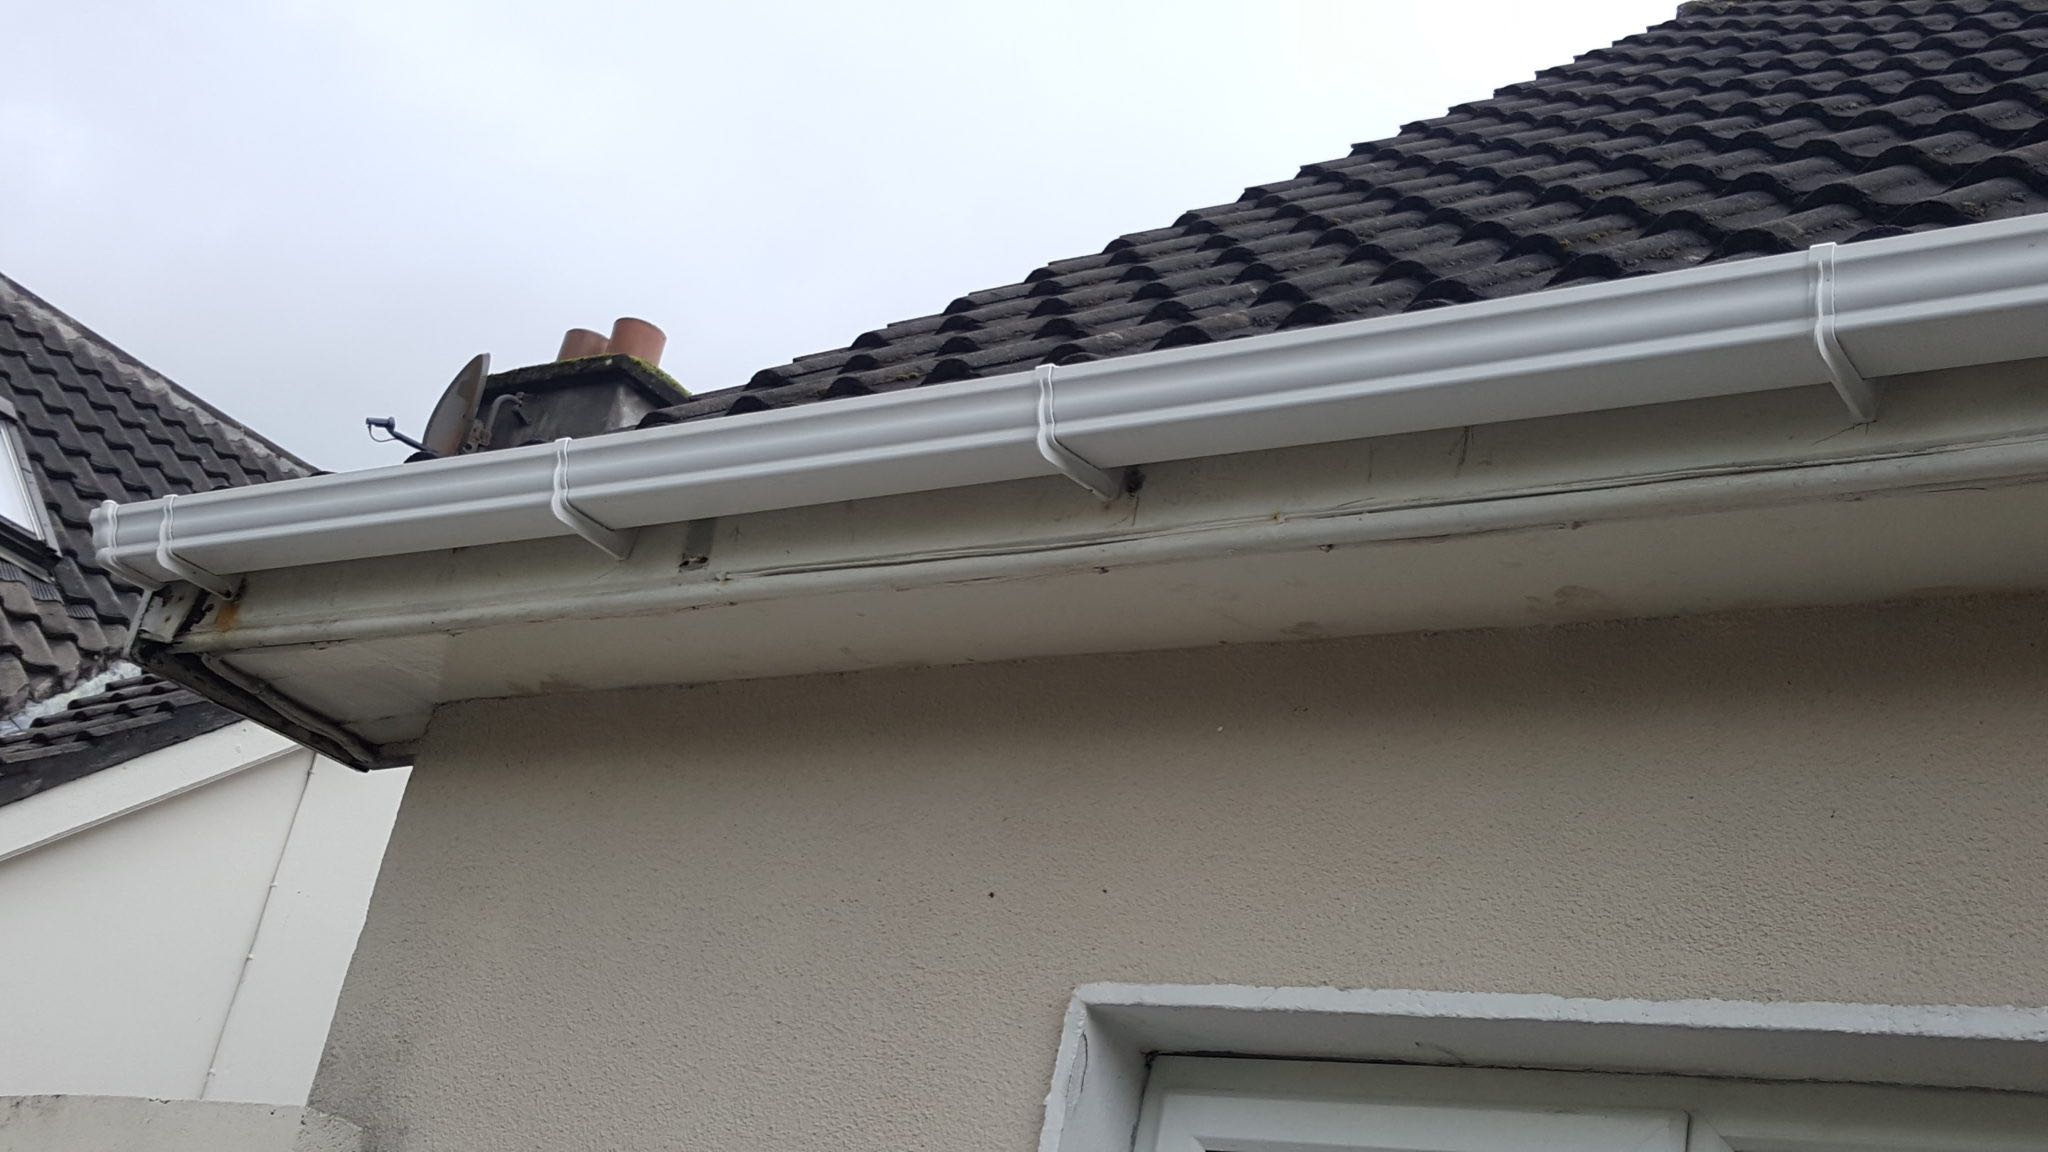 Fascia and guttering - after cleaning